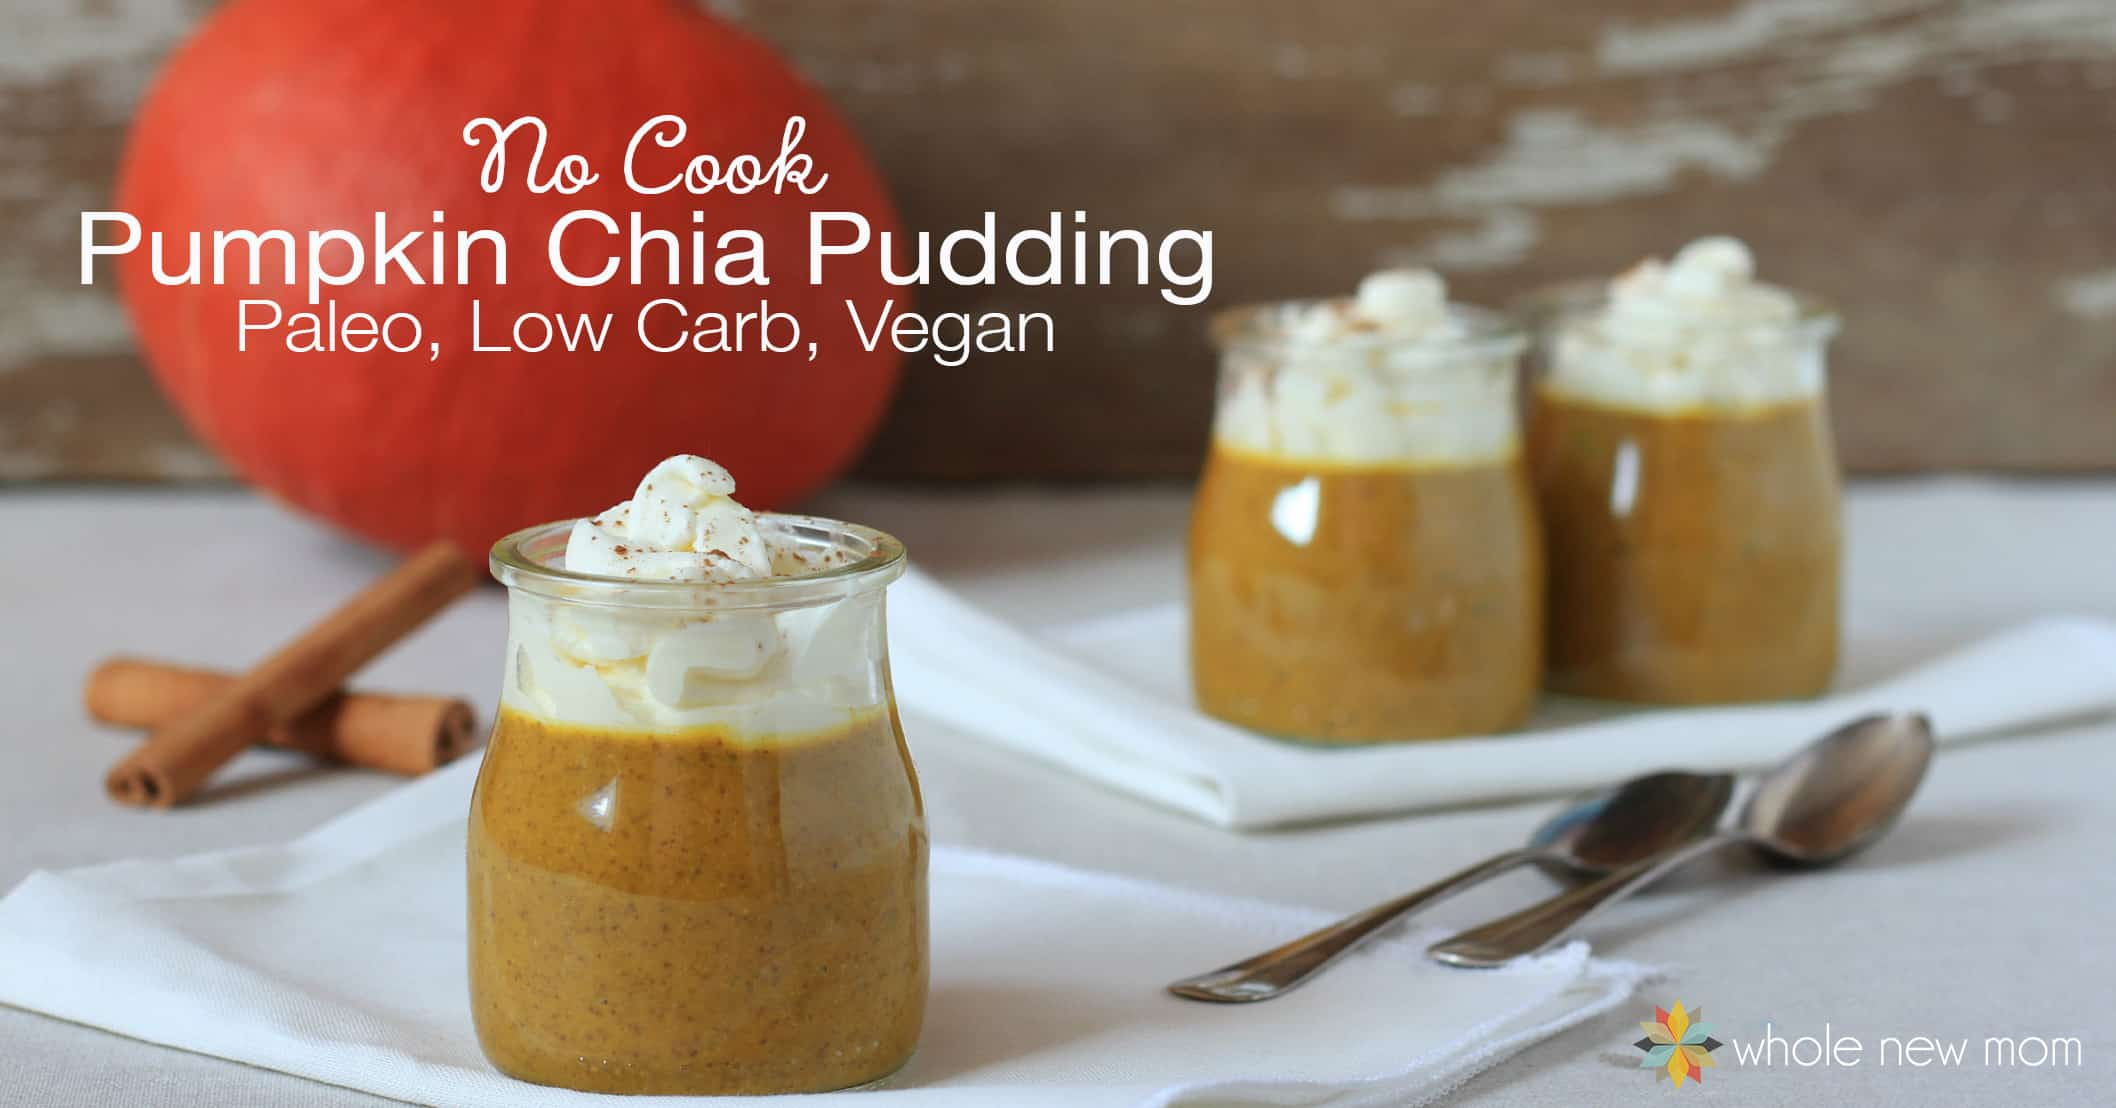 Here's a pumpkin pudding you can feel very good about serving to your family for breakfast, dessert, or really any meal. It's loaded with nutrients like vitamins A and C, potassium, fiber, and more! It's also low carb, paleo, vegan, grain-free, dairy-free, and gluten-free.